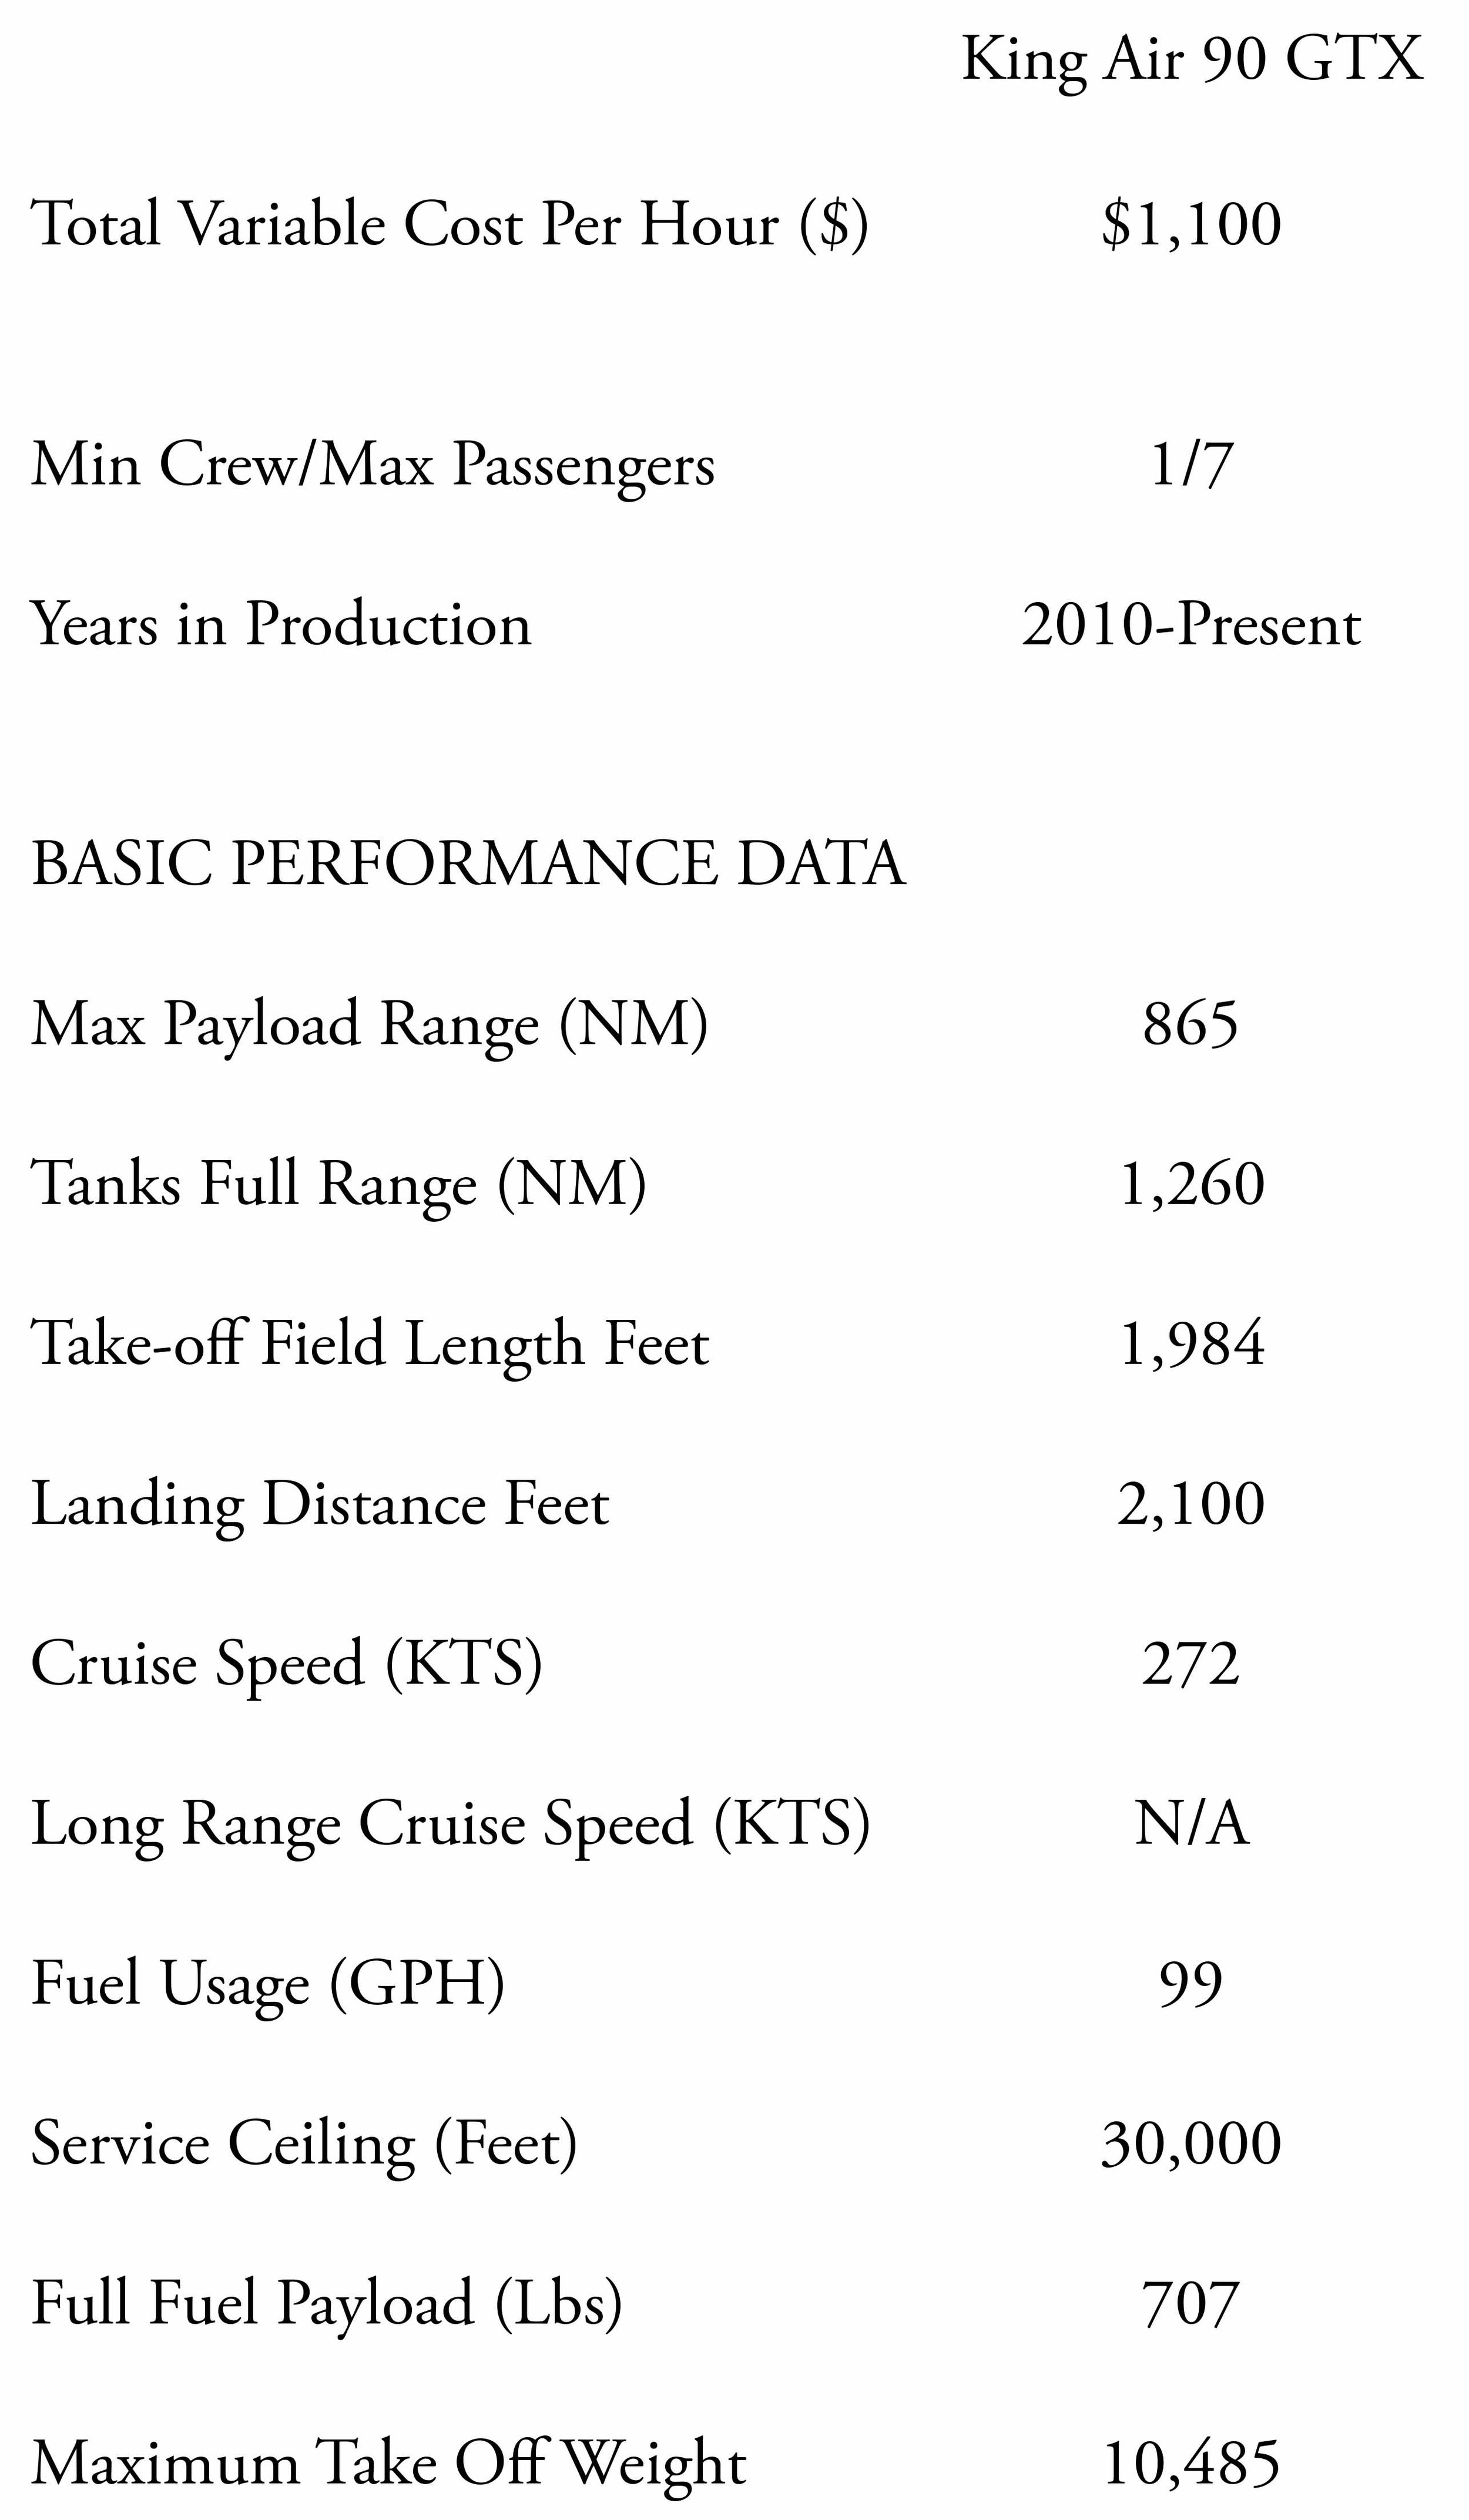 King Air 90 GTX Specs, Fuel usage, long range cruise speed, max cruise speed, ownership costs and variable costs.